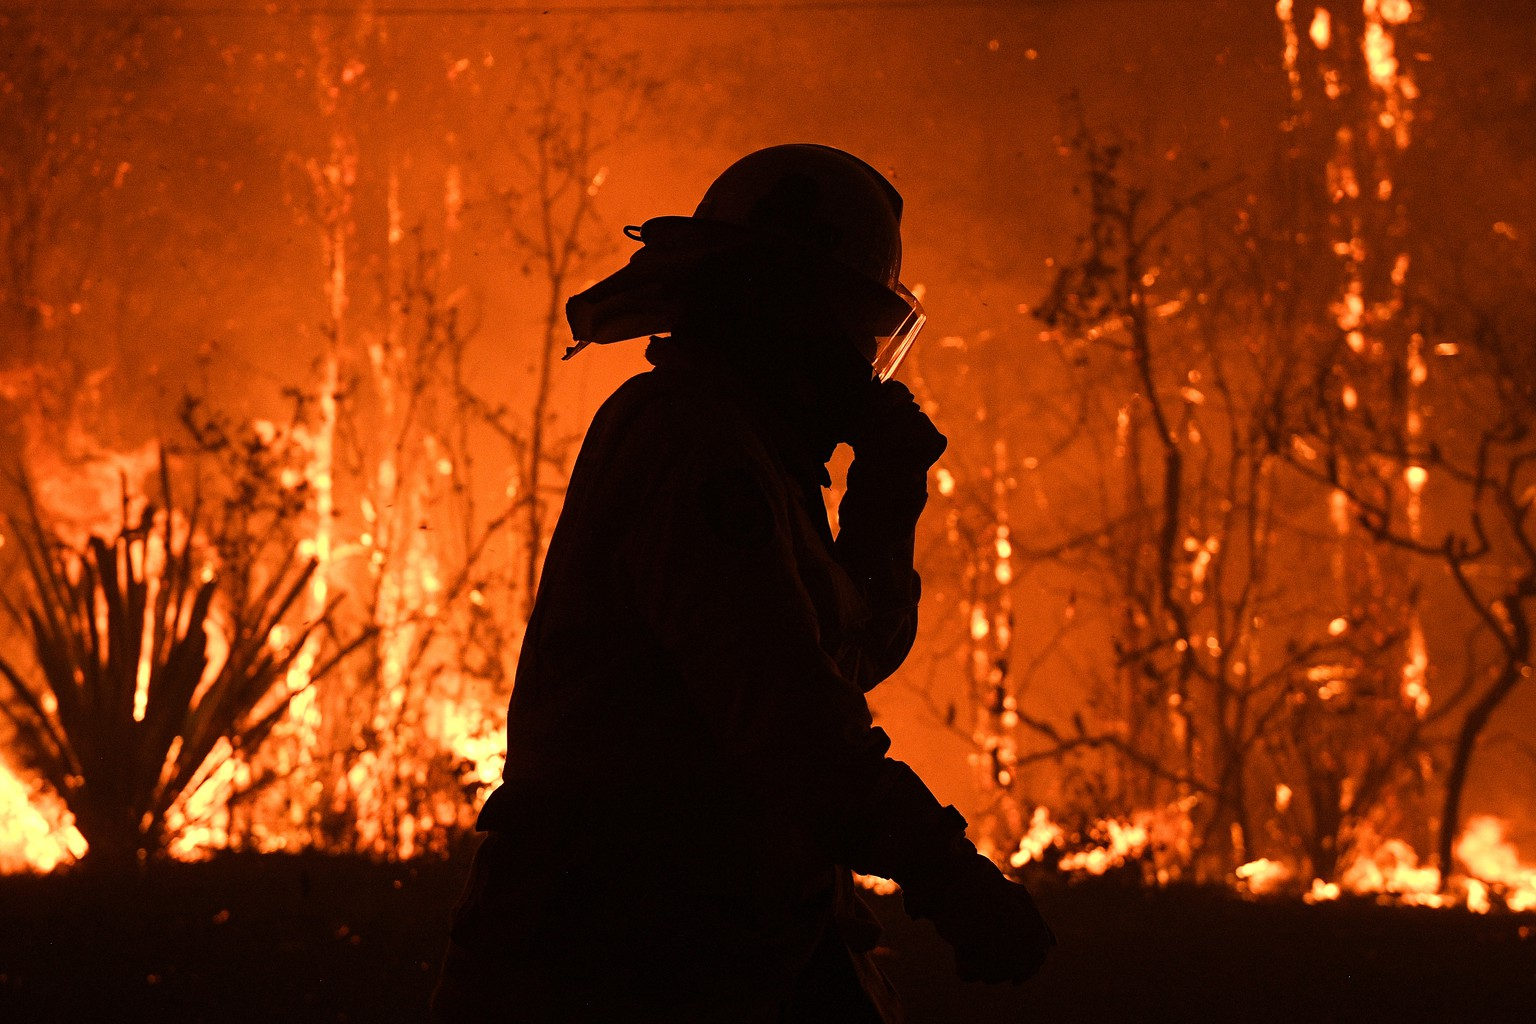 NSW Rural Fire Service crews protect properties on Waratah Road and Kelyknack Road as the Three Mile fire approaches Mangrove Mountain, Australia, December 5, 2019. Picture taken December 5, 2019.  AAP Image/Dan Himbrechts/via REUTERS    ATTENTION EDITORS - THIS IMAGE WAS PROVIDED BY A THIRD PARTY. NO RESALES. NO ARCHIVE. AUSTRALIA OUT. NEW ZEALAND OUT. NO COMMERCIAL OR EDITORIAL SALES IN NEW ZEALAND. NO COMMERCIAL OR EDITORIAL SALES IN AUSTRALIA.